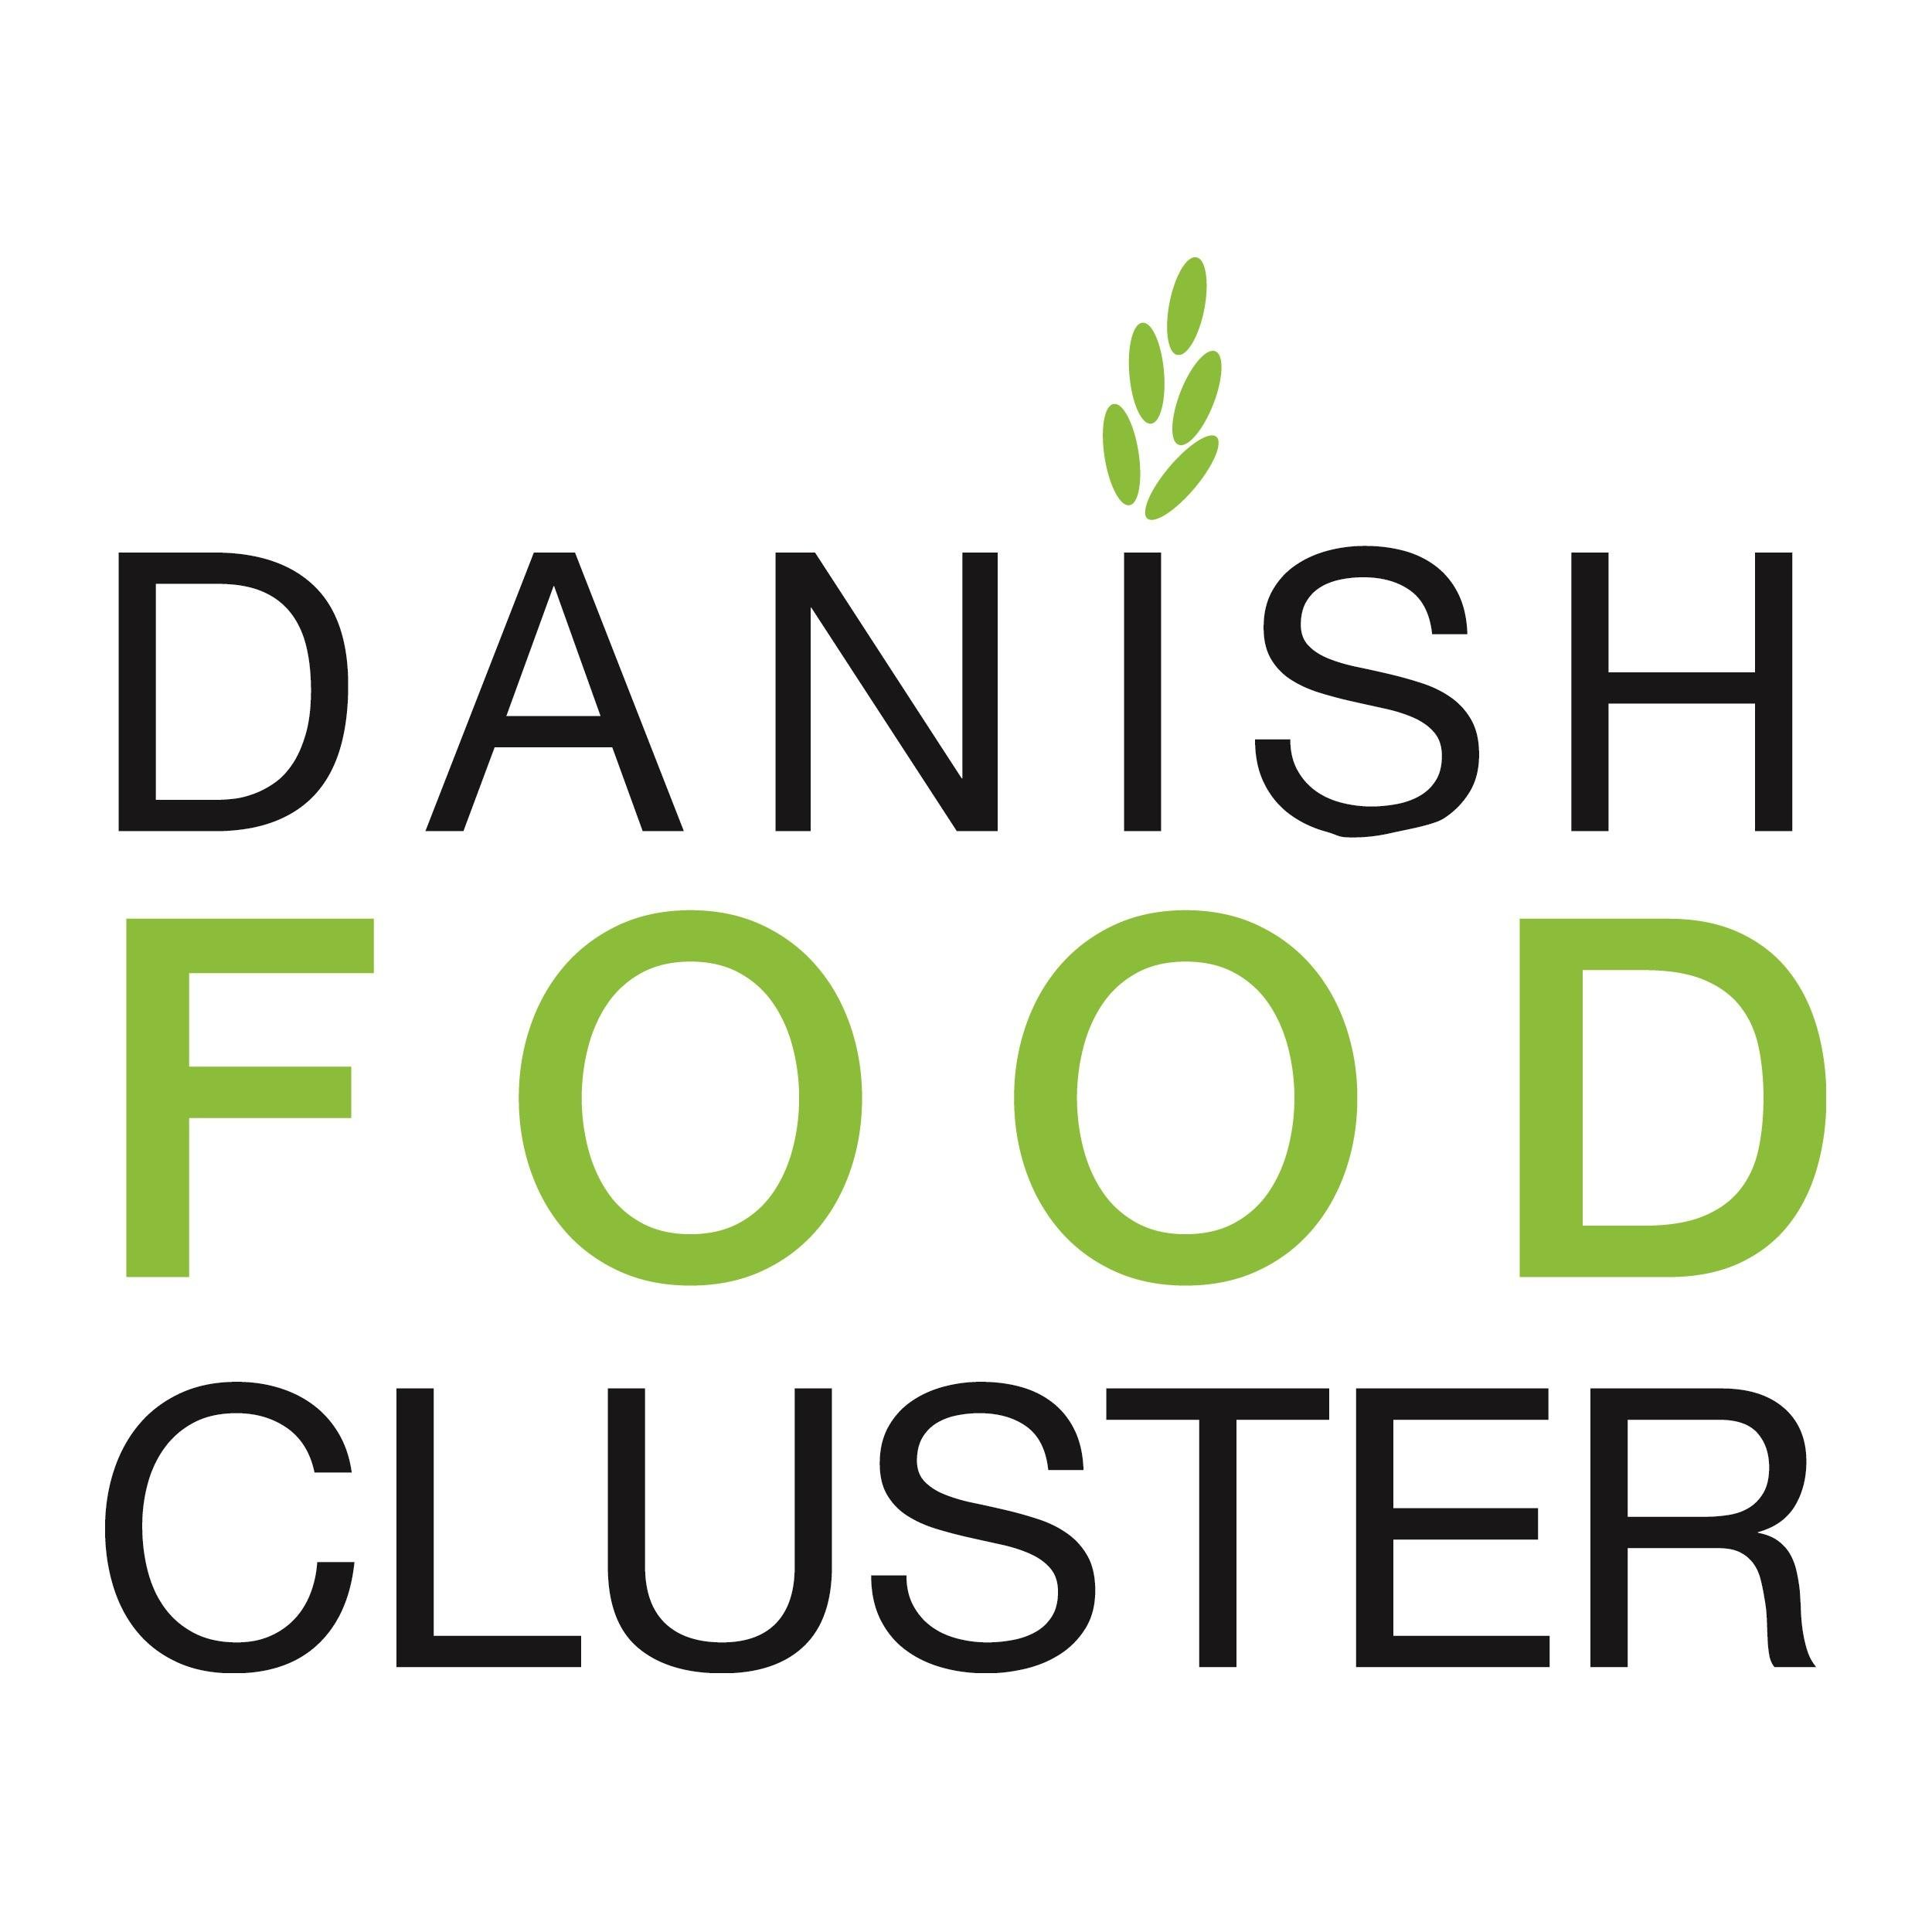 danish food cluster on twitter danish food cluster want to wish everyone a merry christmas we will leave for christmas holiday and look back at an - Merry Christmas In Danish